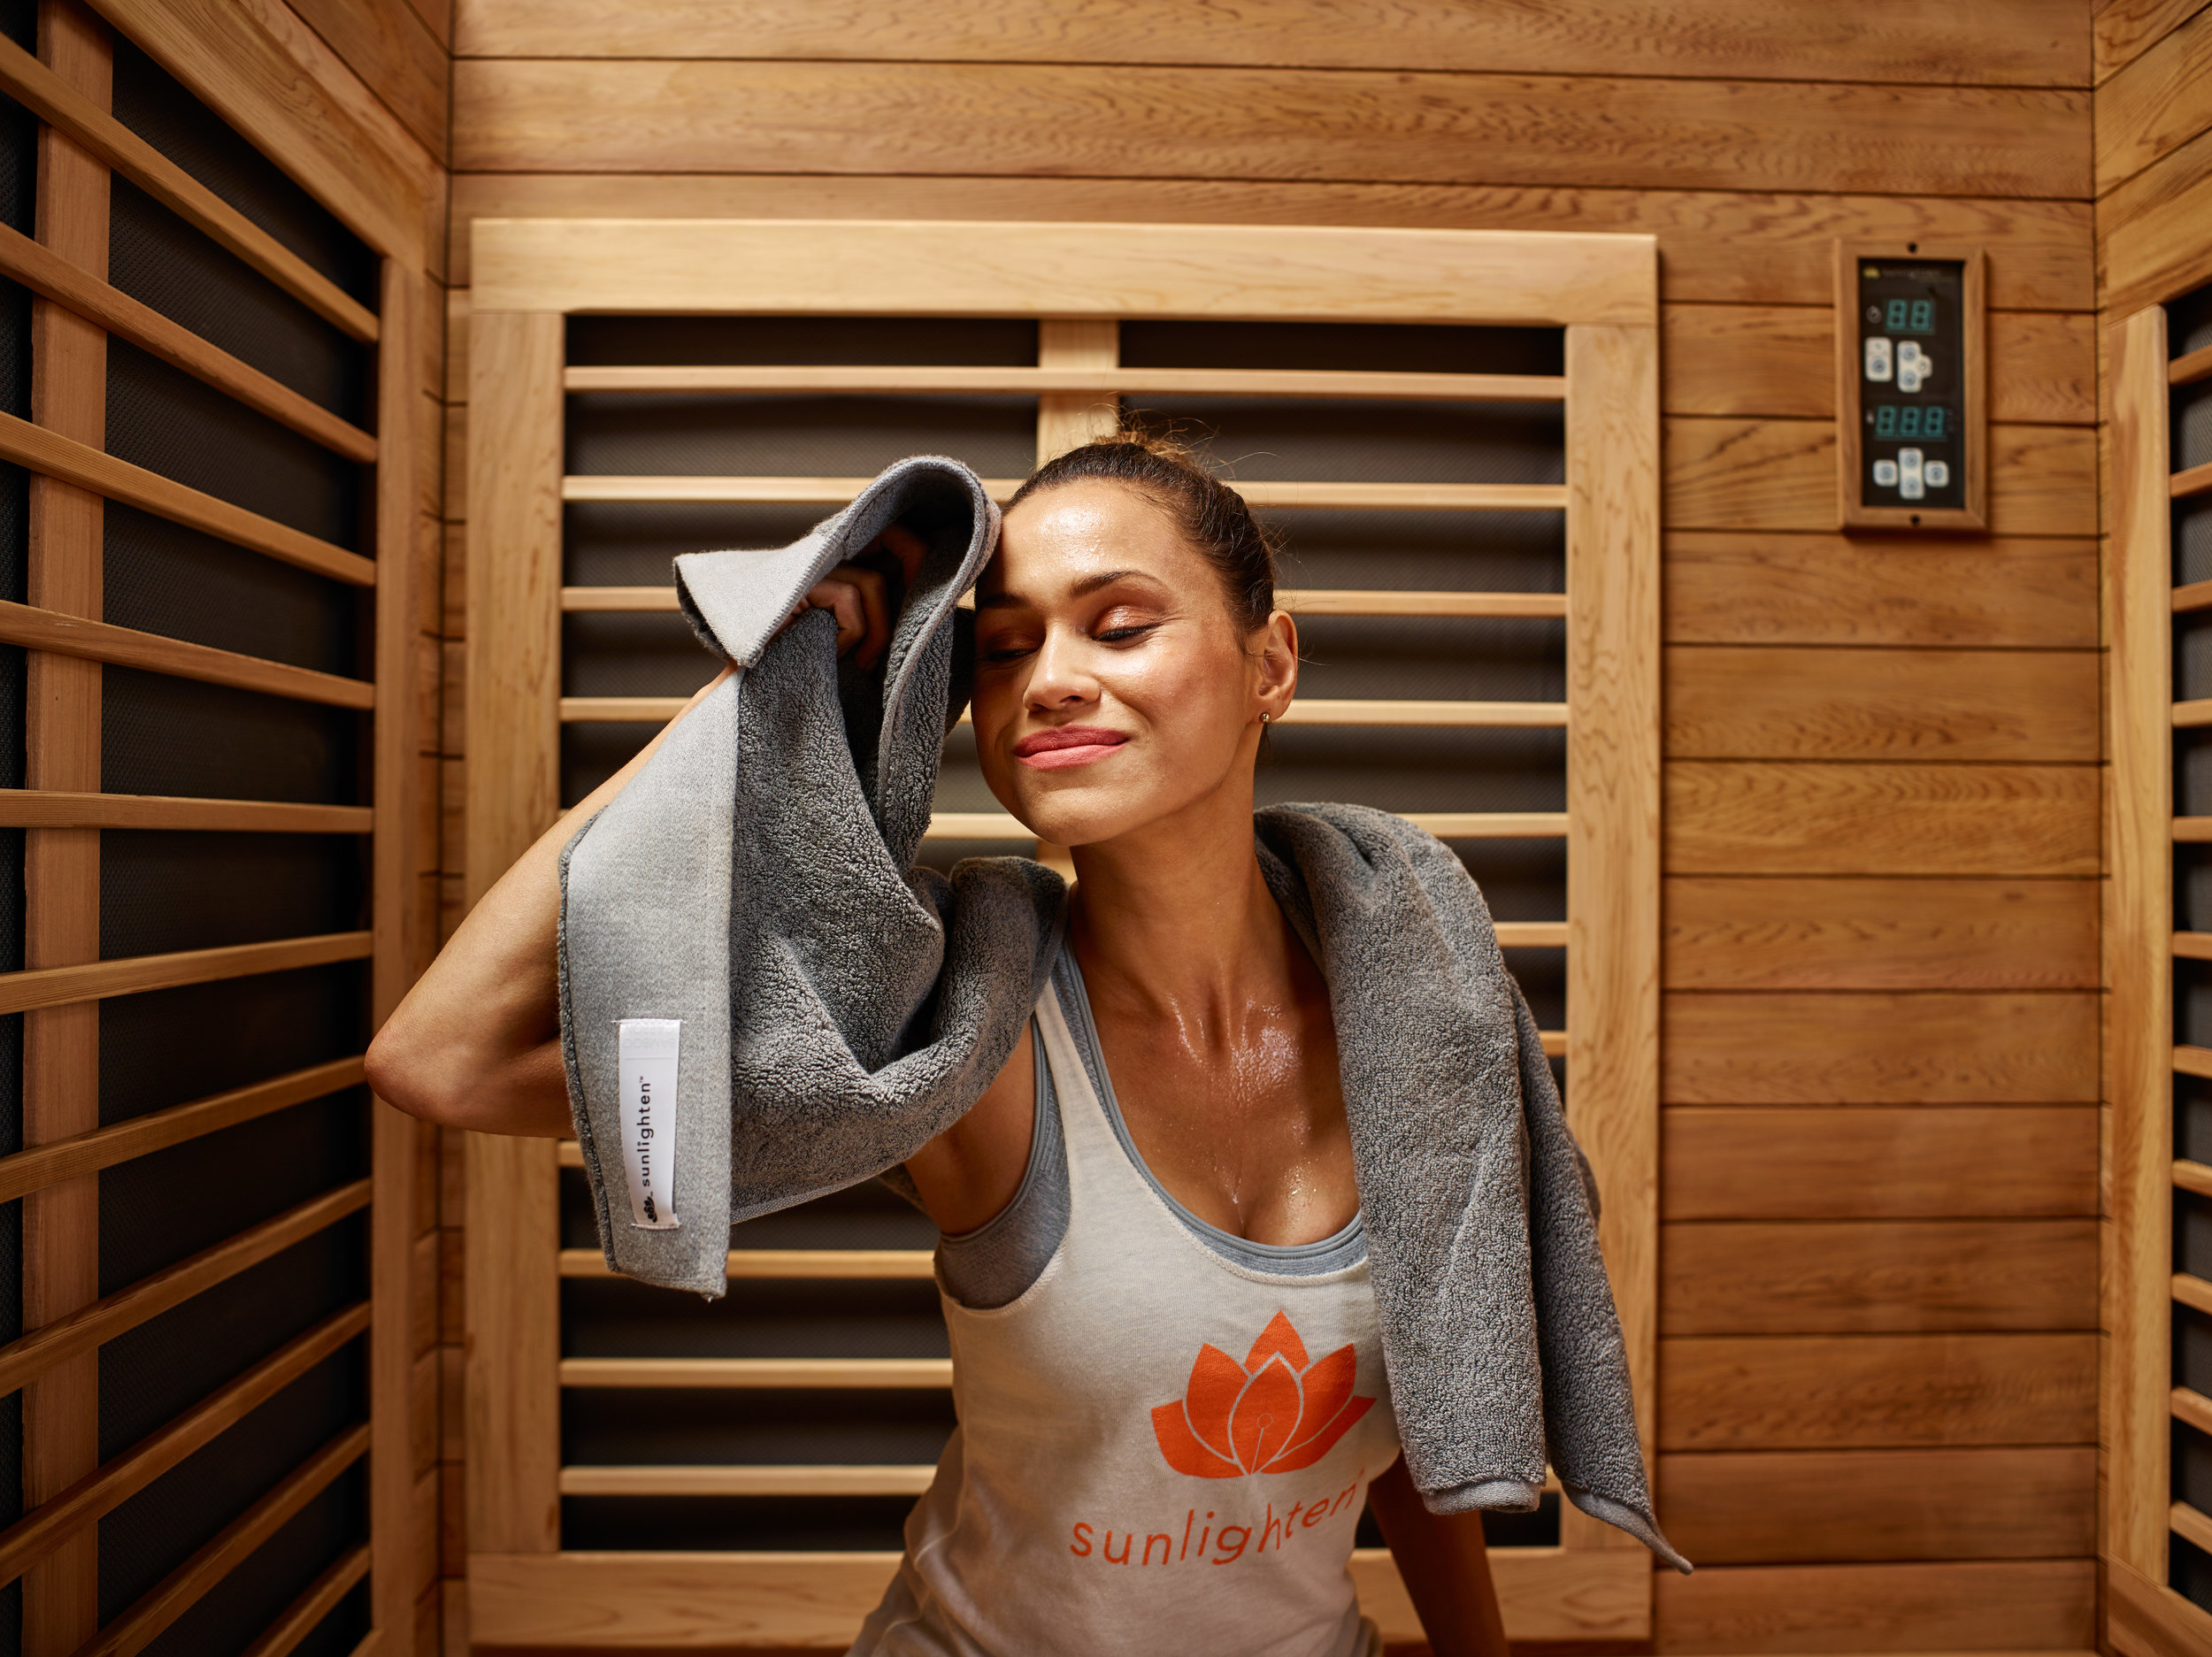 Infrared Sauna Sunlighten.jpg